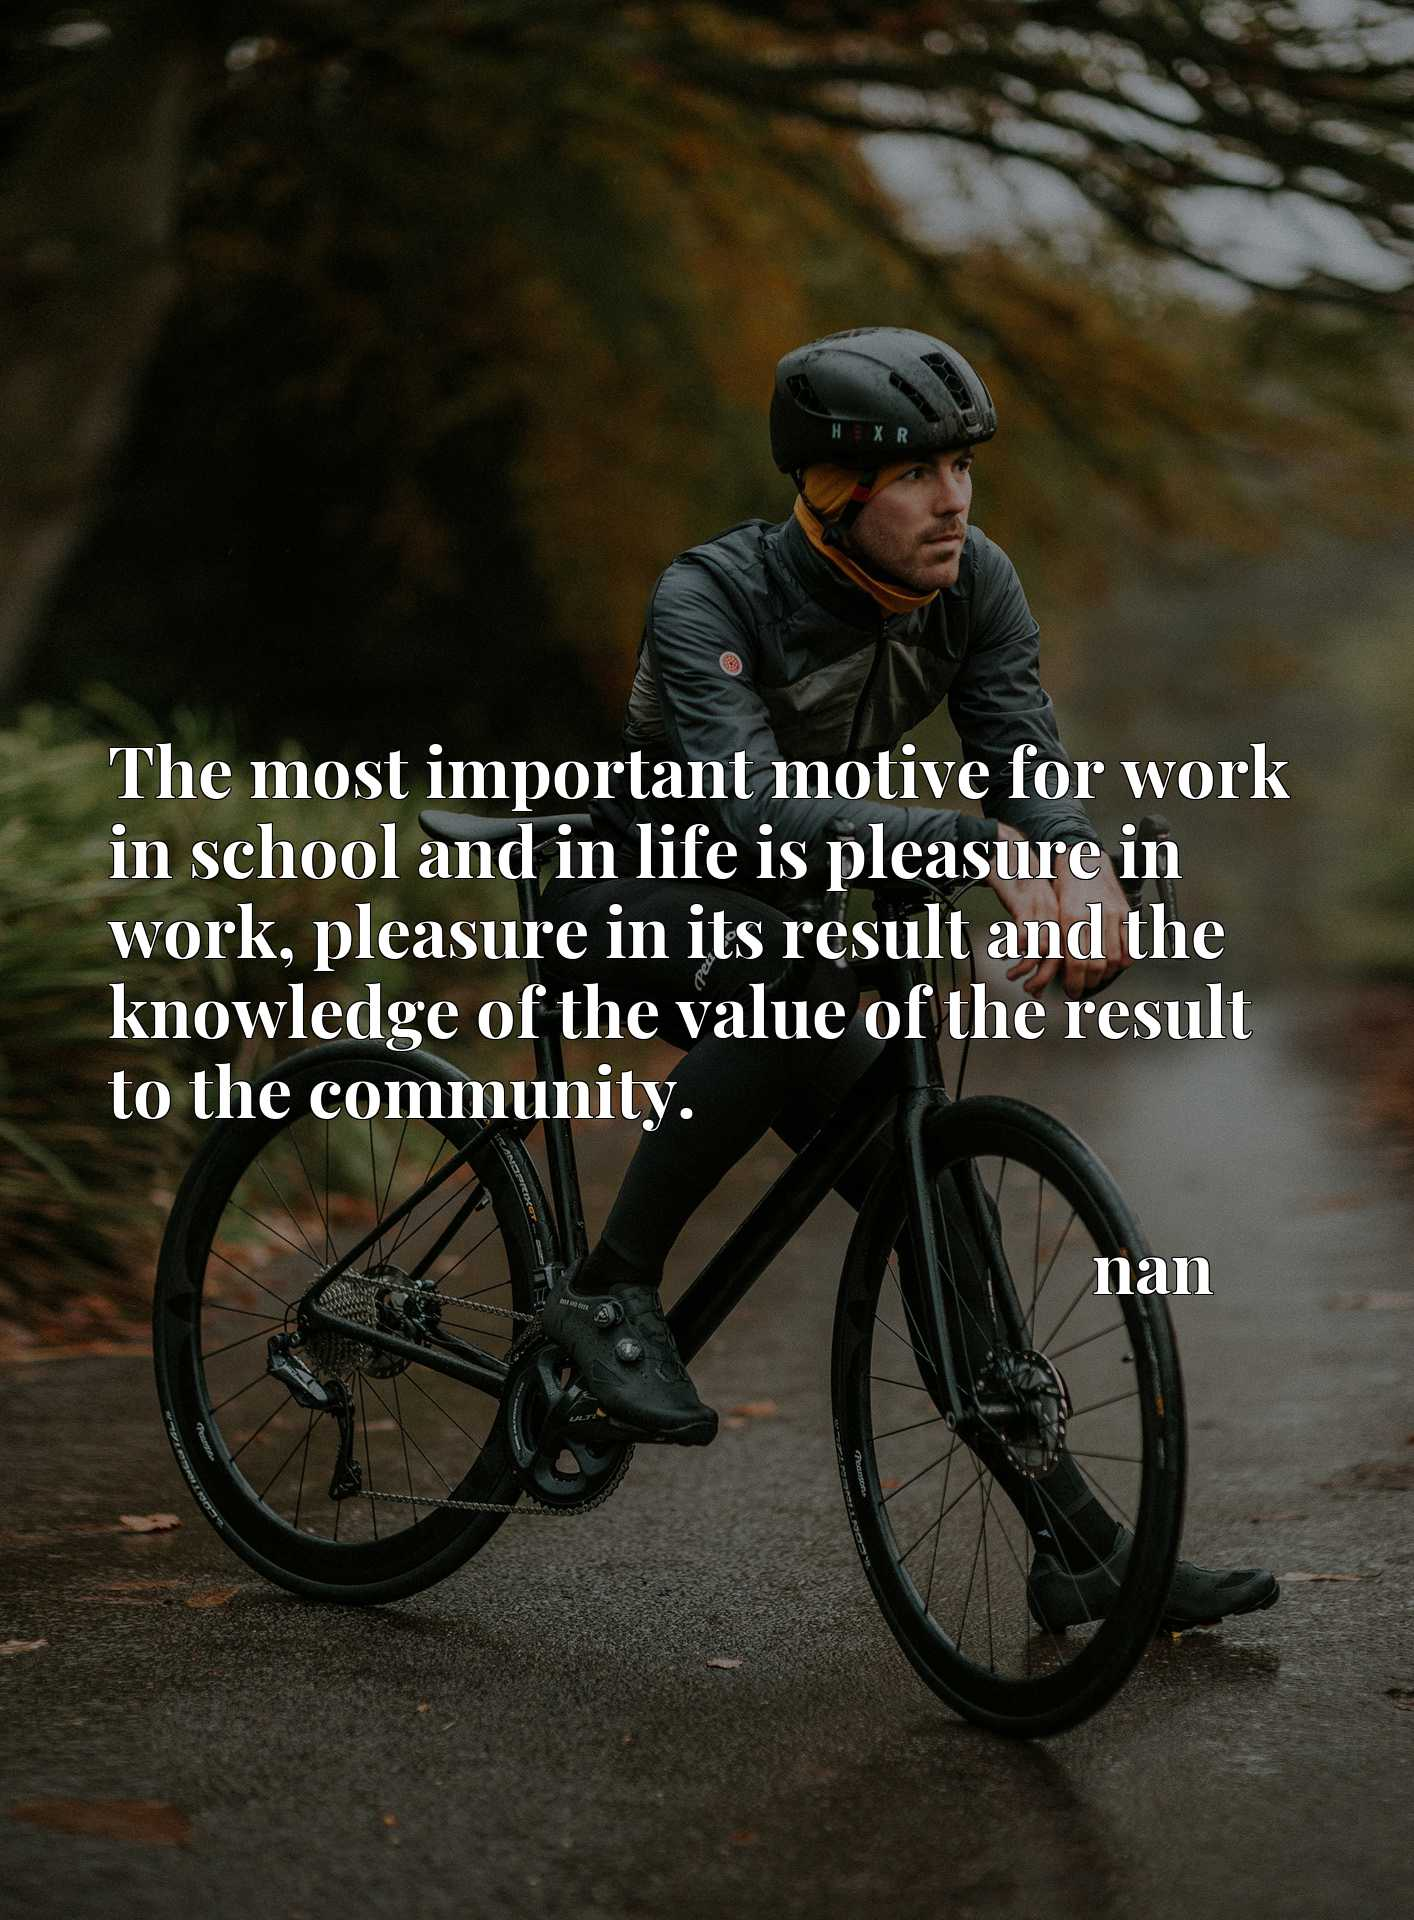 The most important motive for work in school and in life is pleasure in work, pleasure in its result and the knowledge of the value of the result to the community.